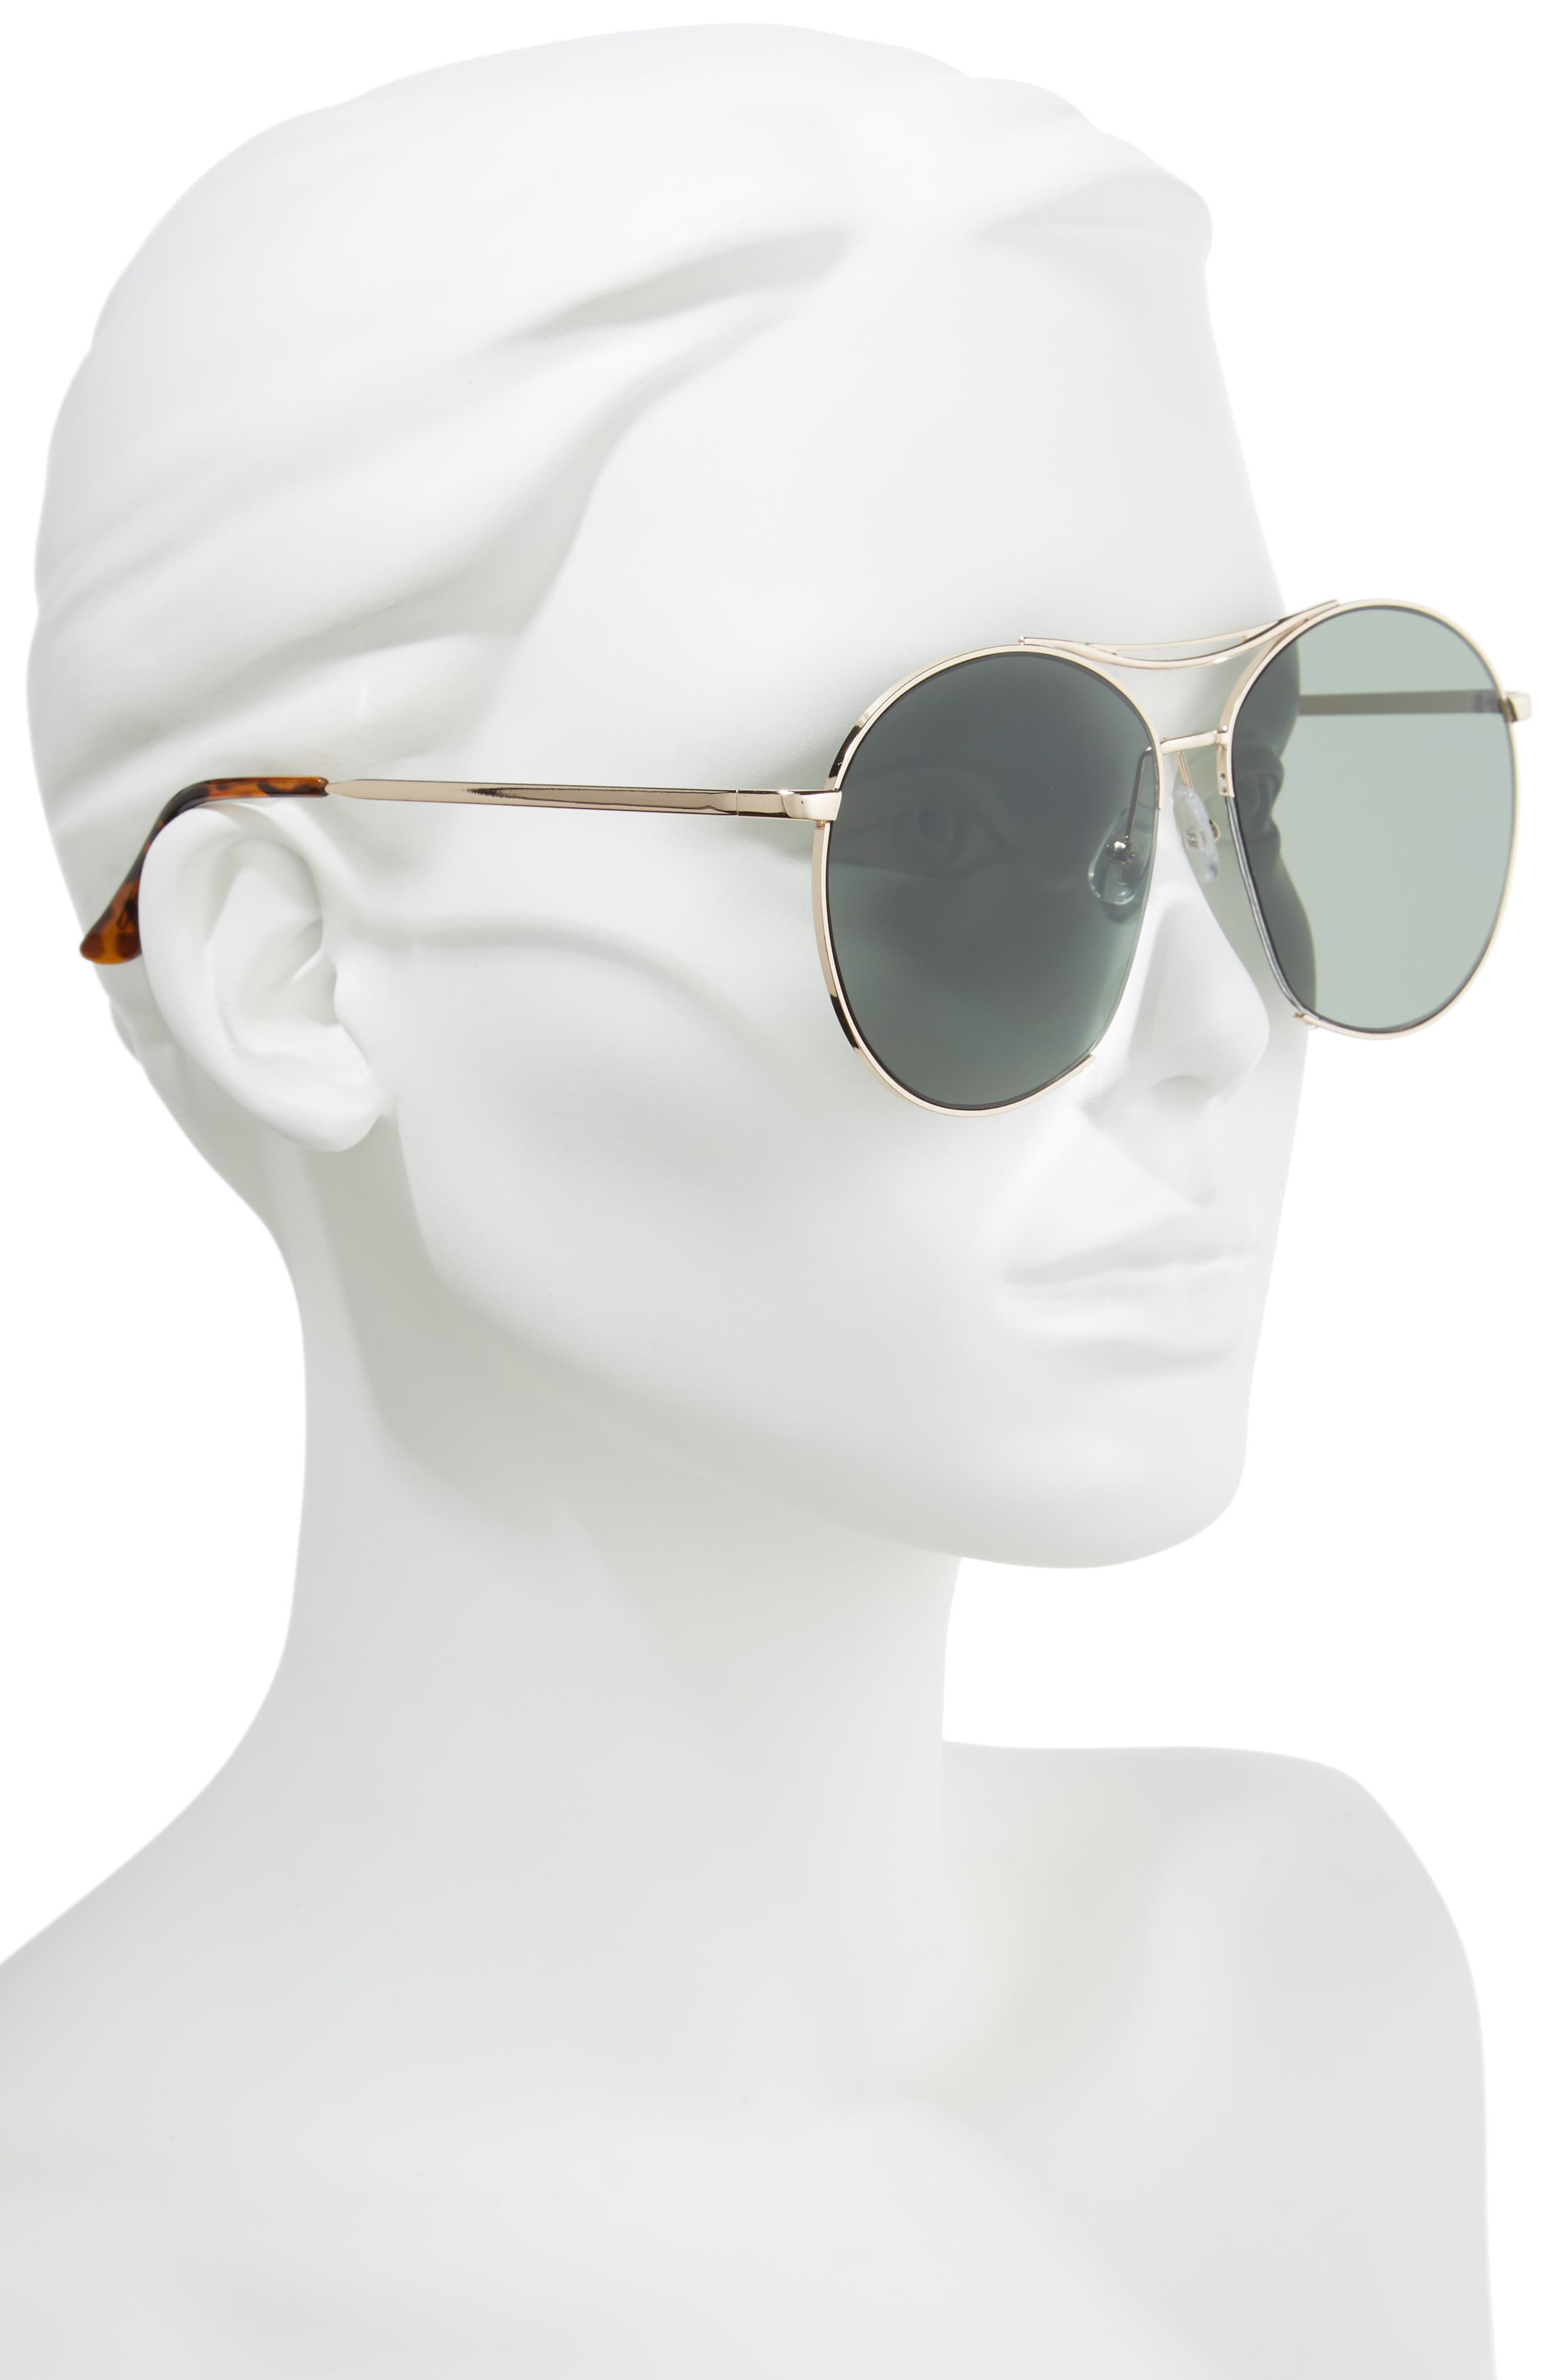 60mm Round Aviator Sunglasses,                             Alternate thumbnail 2, color,                             Gold